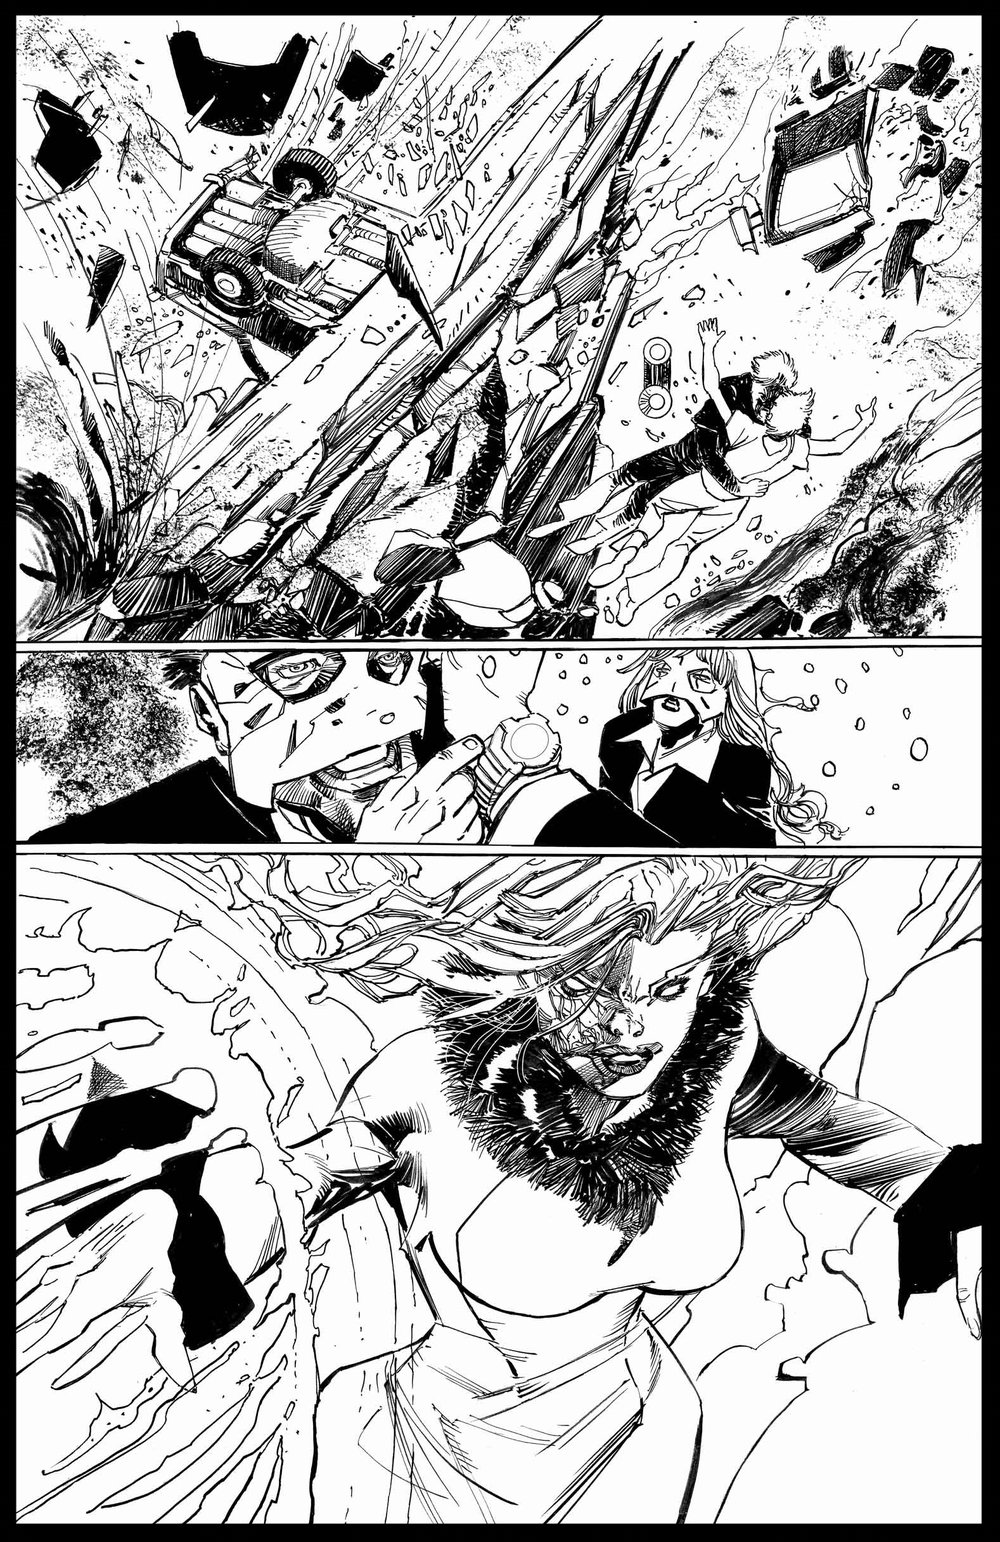 Brimstone #11 - Page 4 - Pencils & Inks